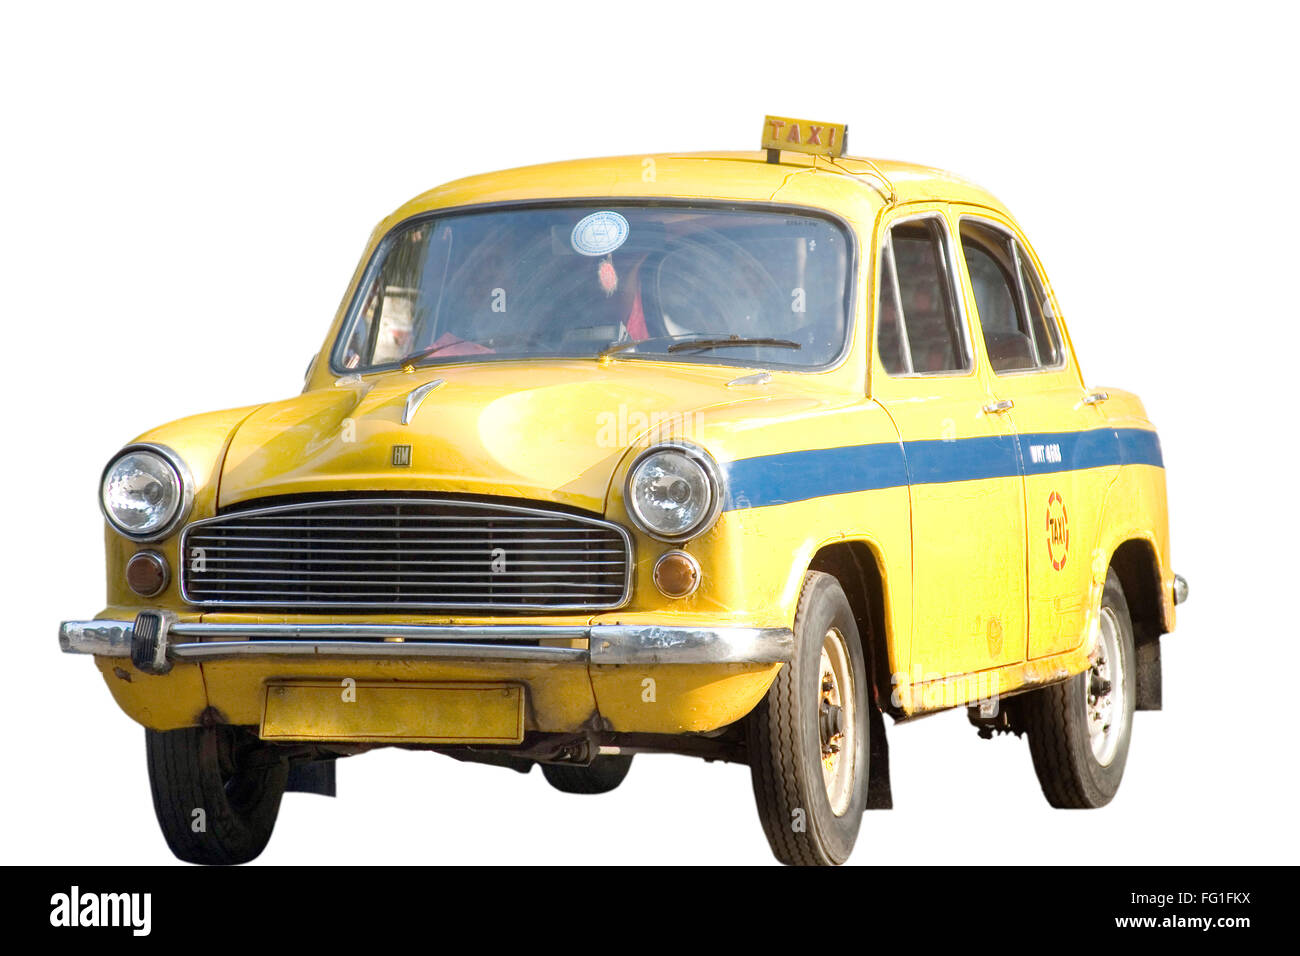 Yellow taxi Hindustan Ambassador an automobile manufactured by Hindustan Motors of India on white background - Stock Image